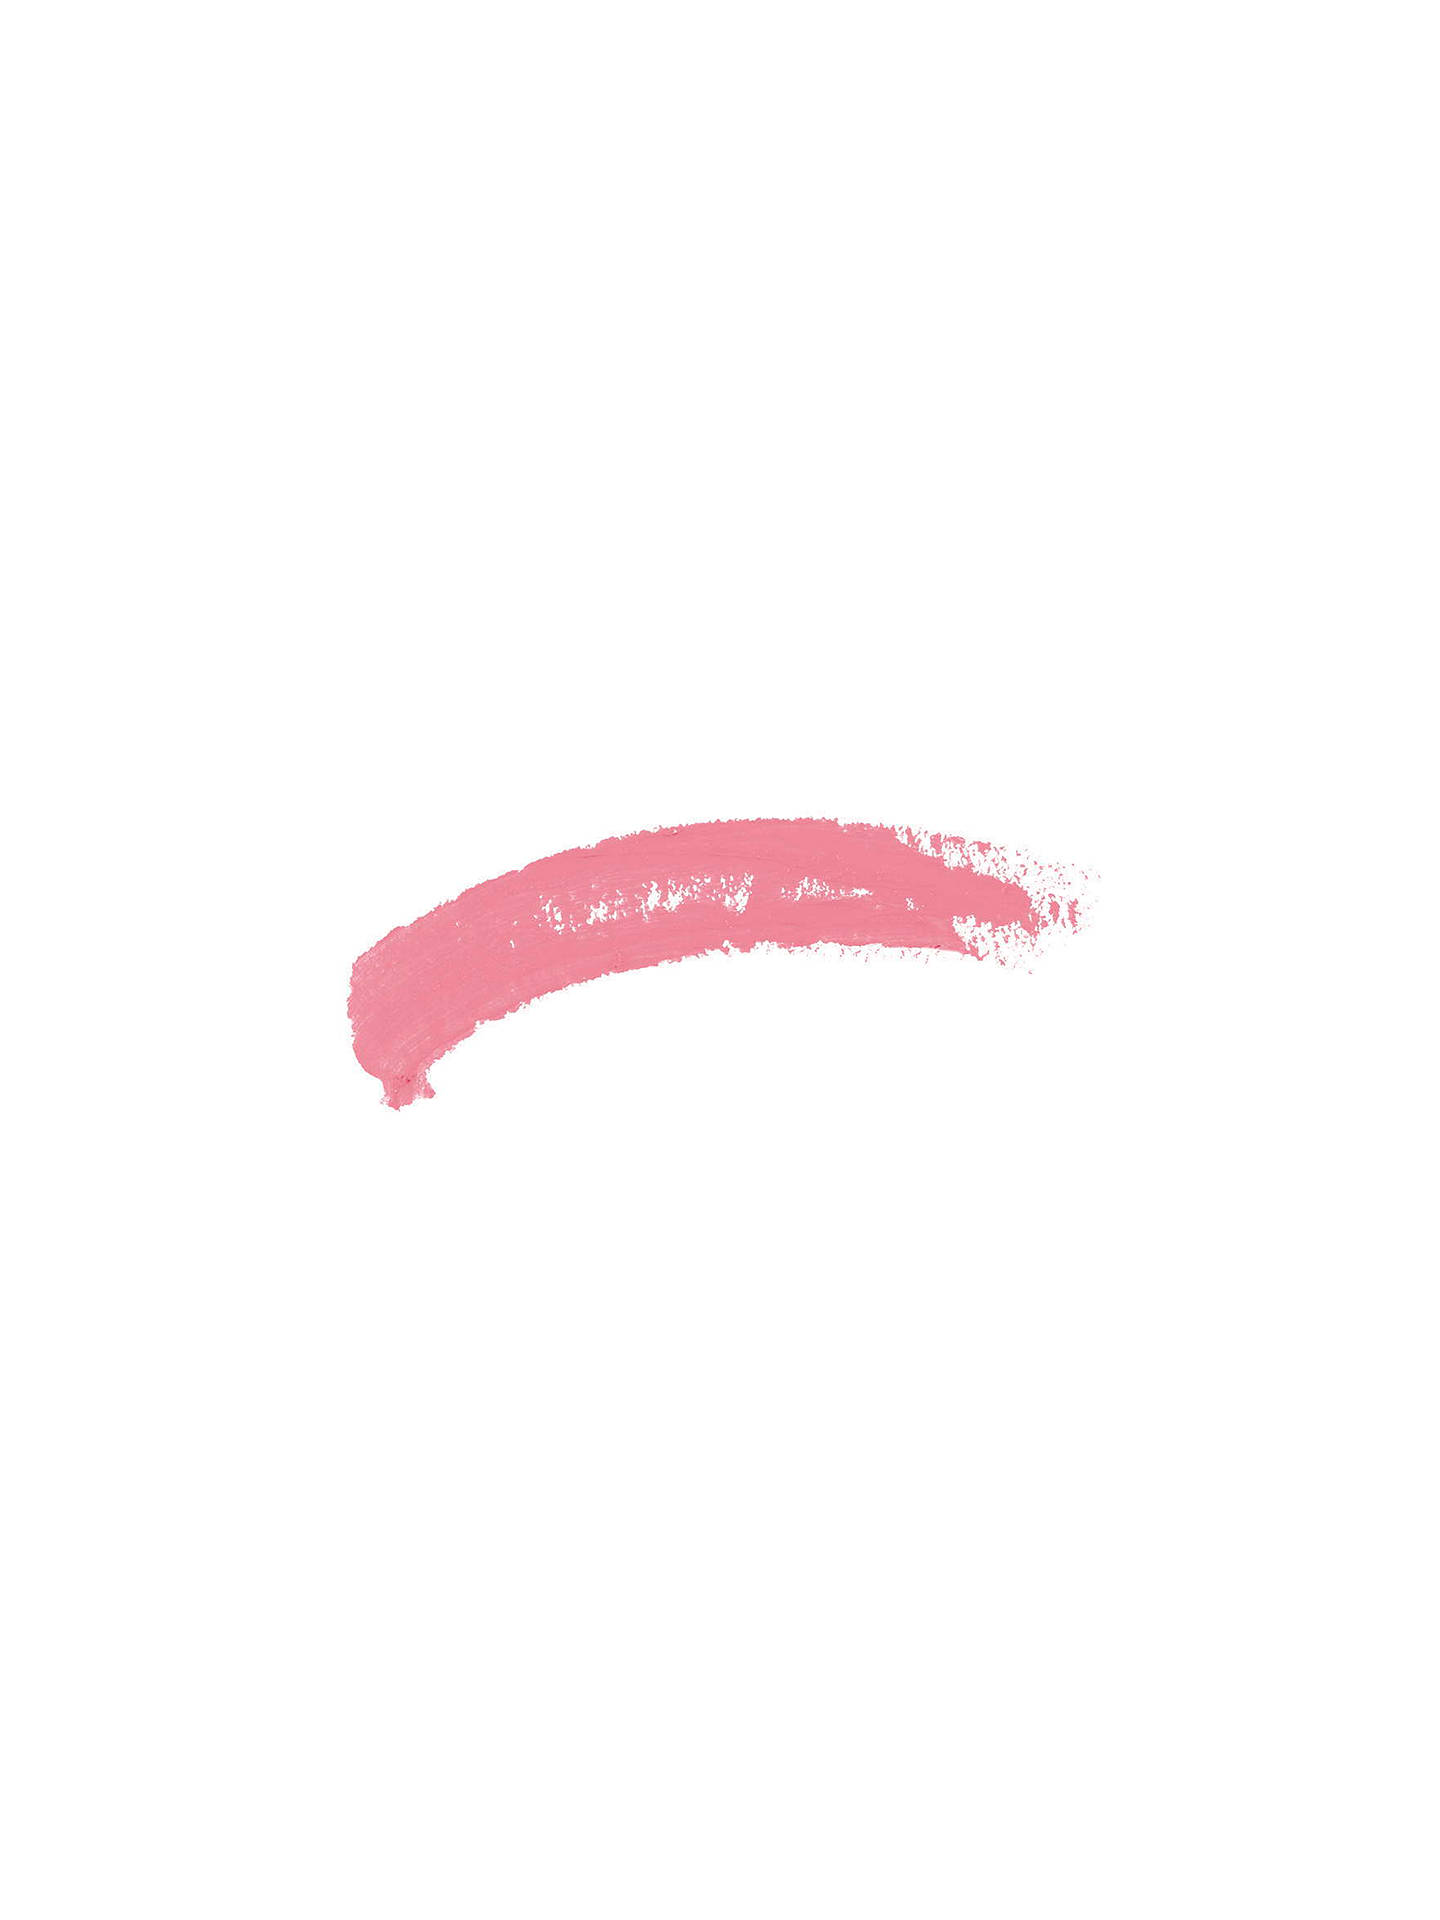 BuyTOPSHOP Lips - 5 Years of Beauty, Innocent Online at johnlewis.com